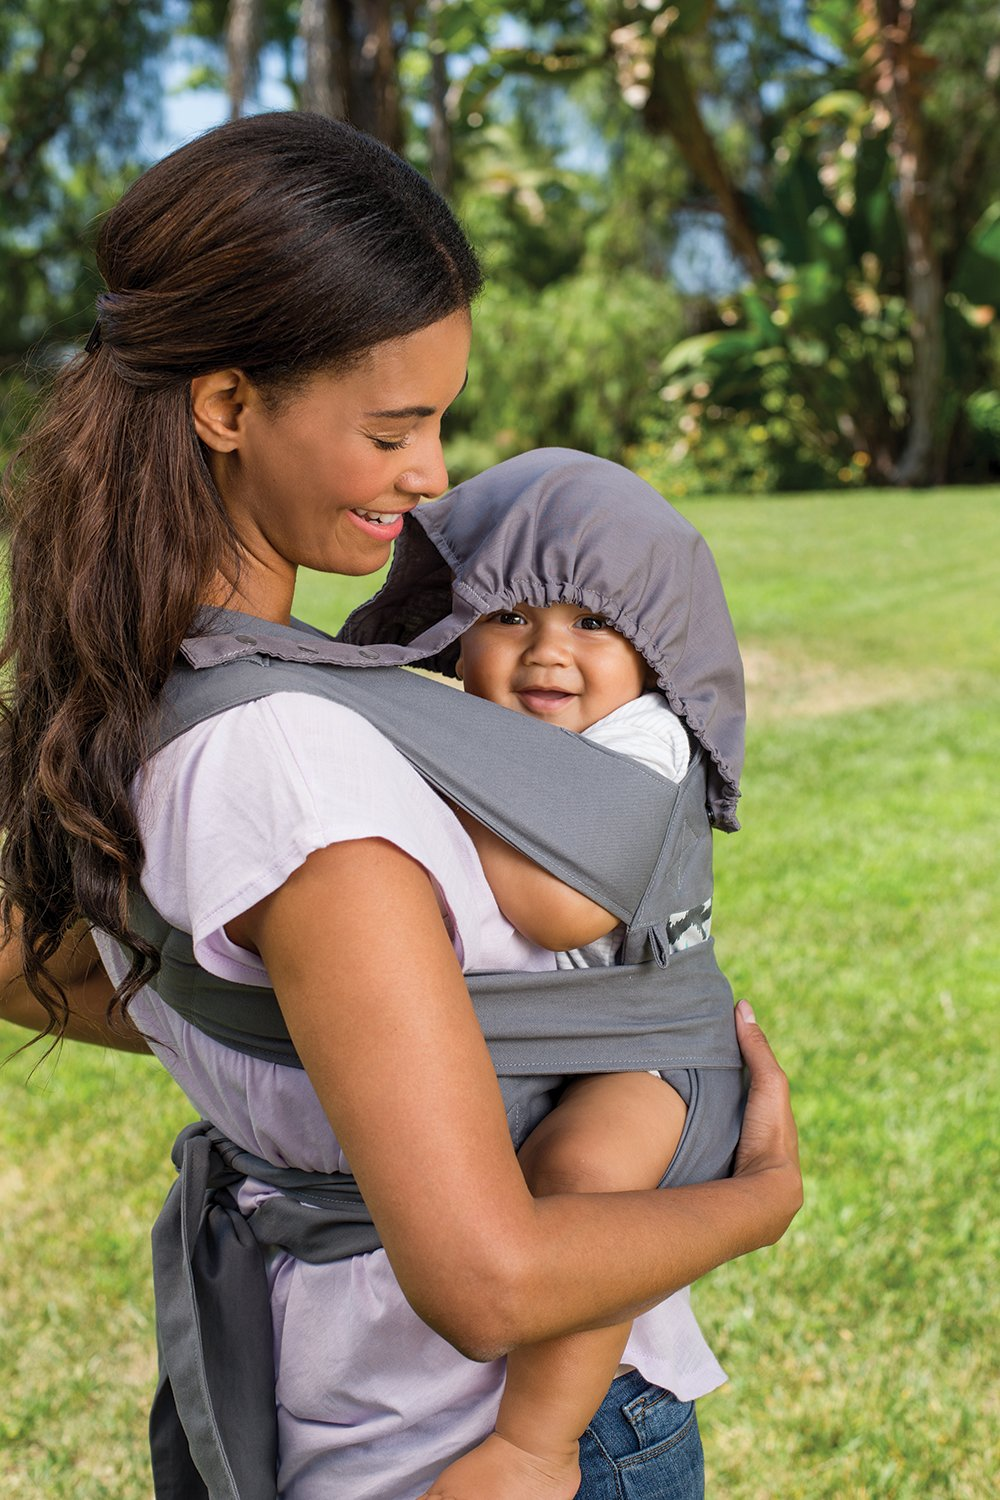 Infantino Sash Wrap and Tie Best Baby Carrier